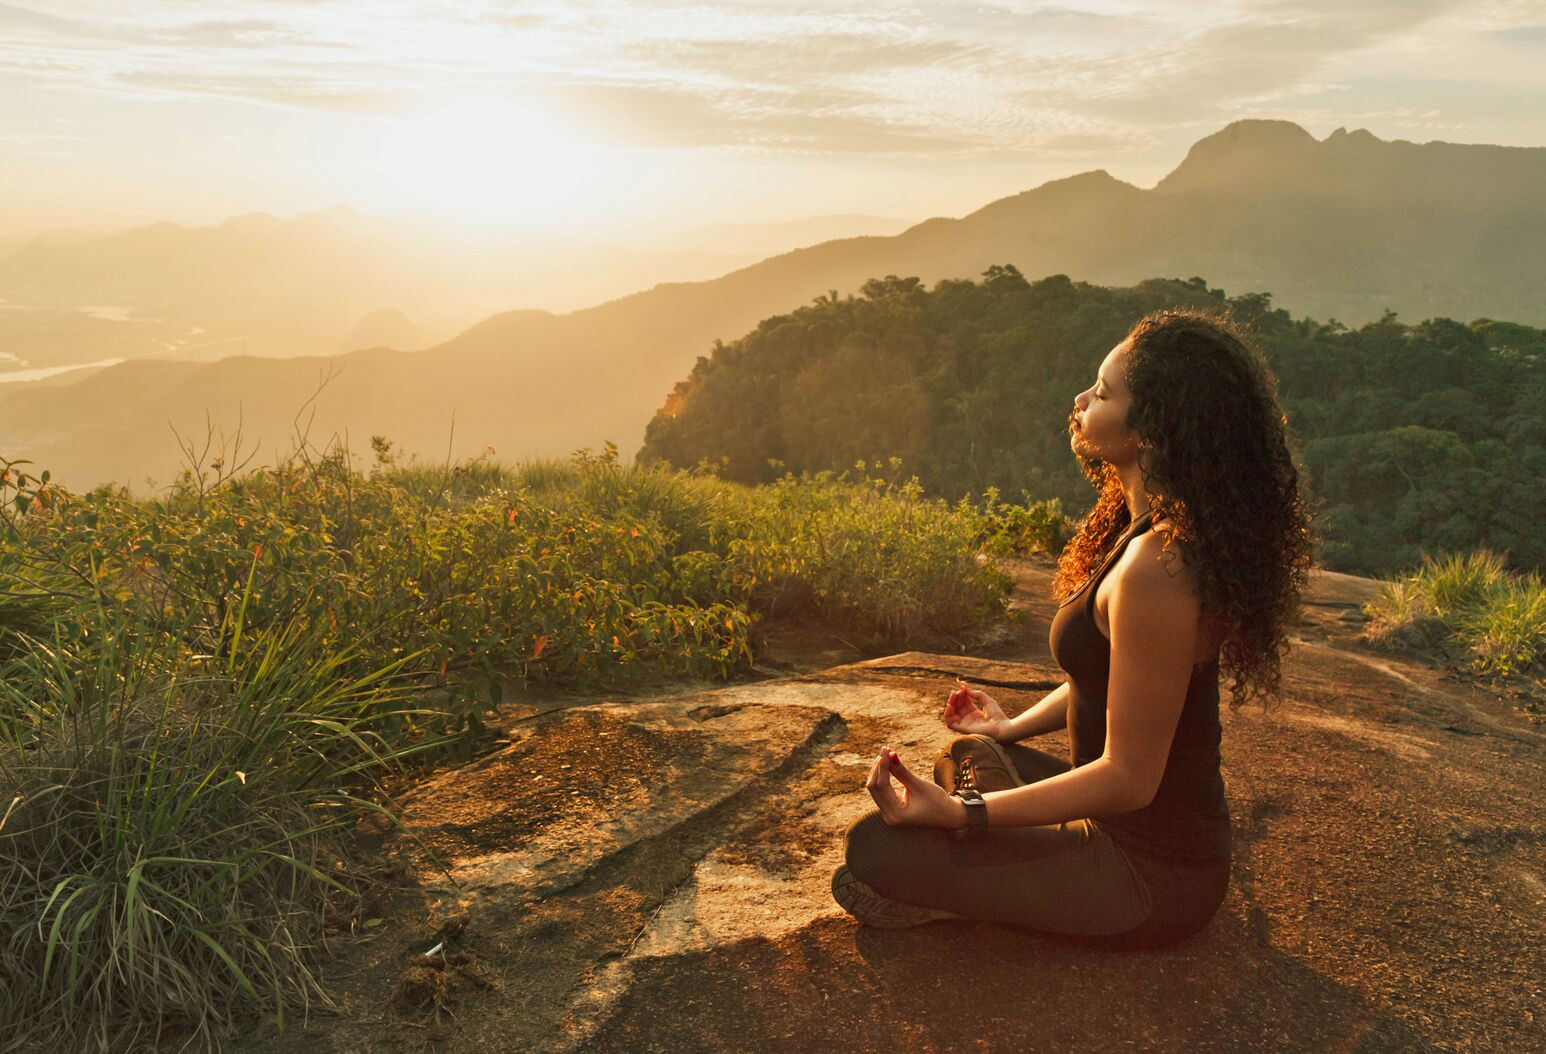 A woman meditates at the top of a mountain.